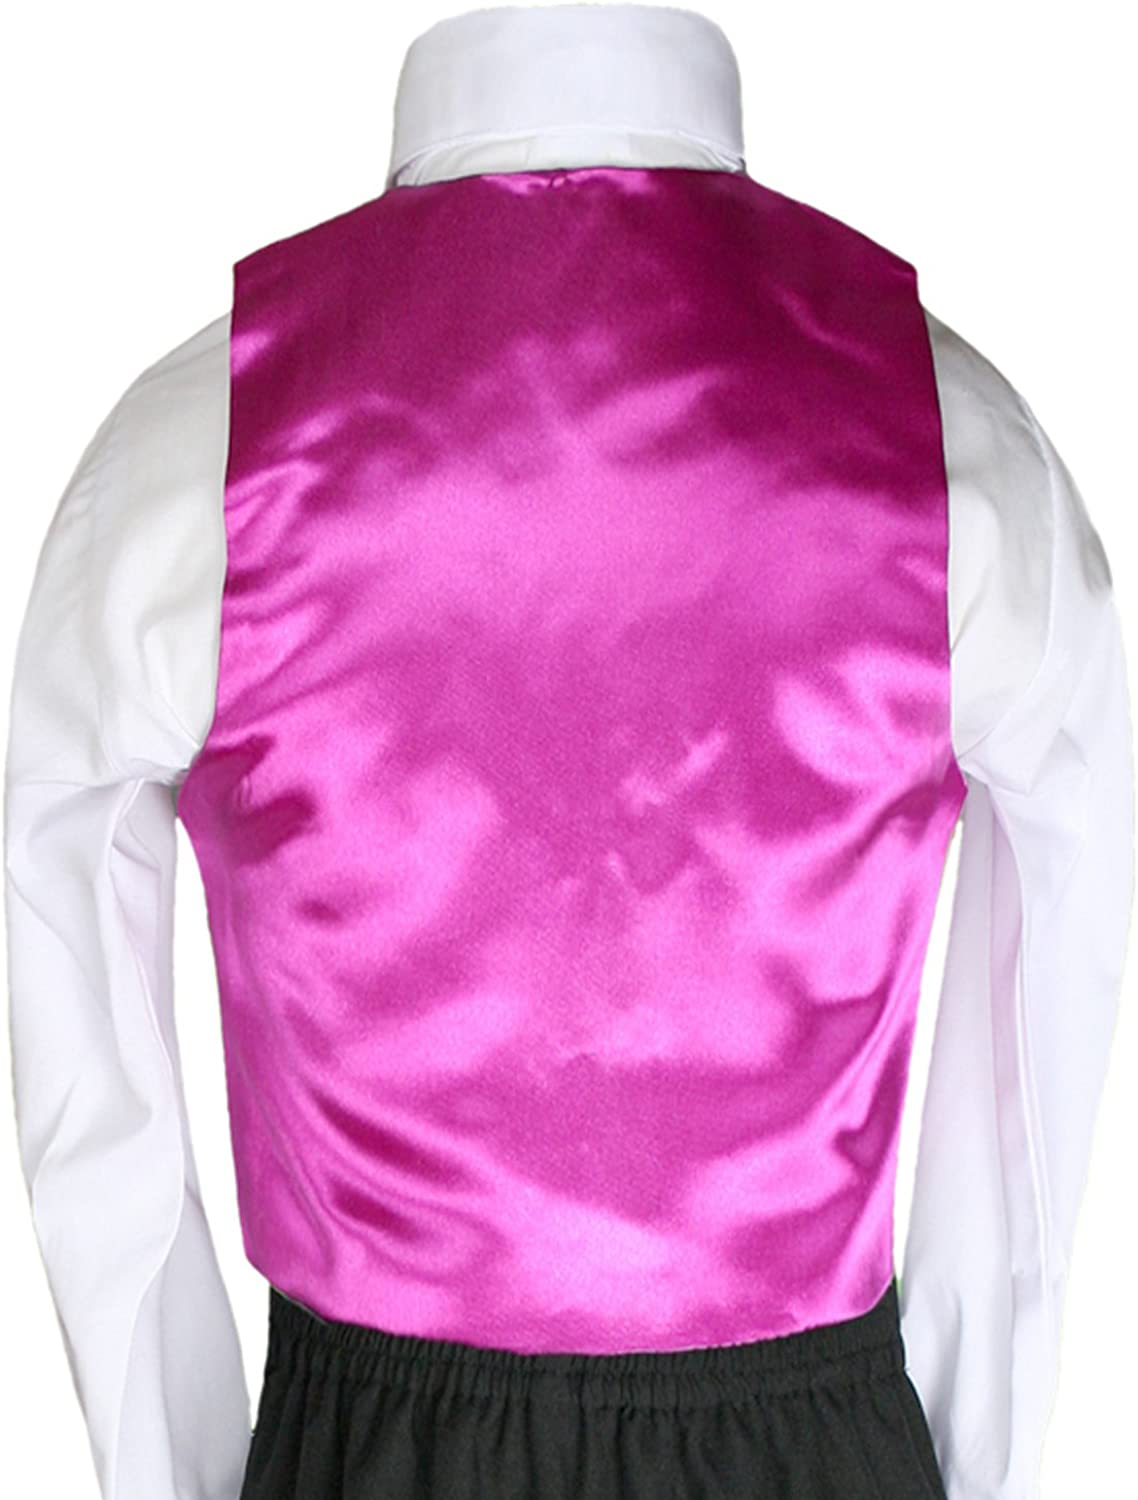 Unotux 2pc Boys Satin Fuchsia Vest and Bow tie Sets from Baby to Teen